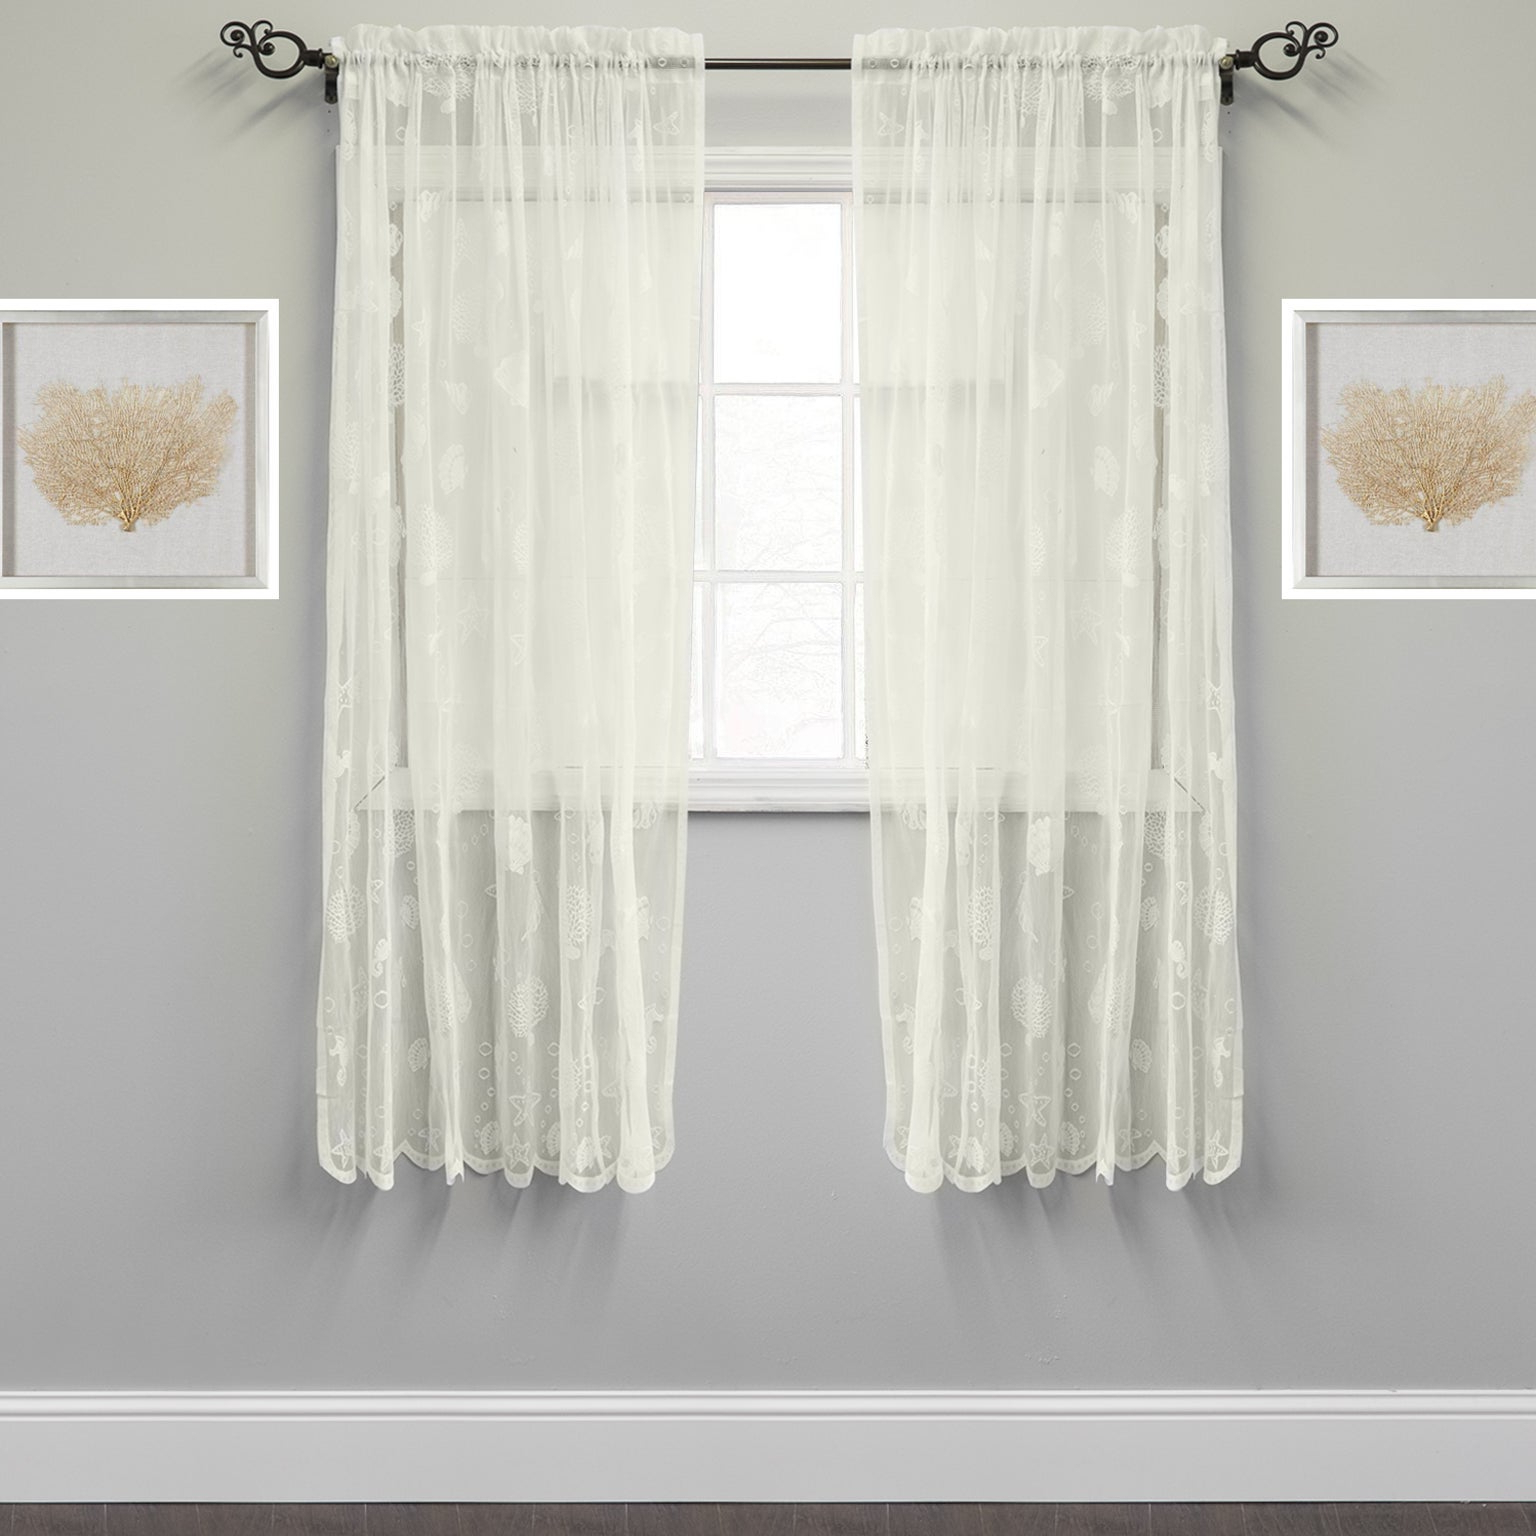 Most Recently Released Marine Life Motif Knitted Lace Window Curtain Panel With Regard To Marine Life Motif Knitted Lace Window Curtain Pieces (View 5 of 20)